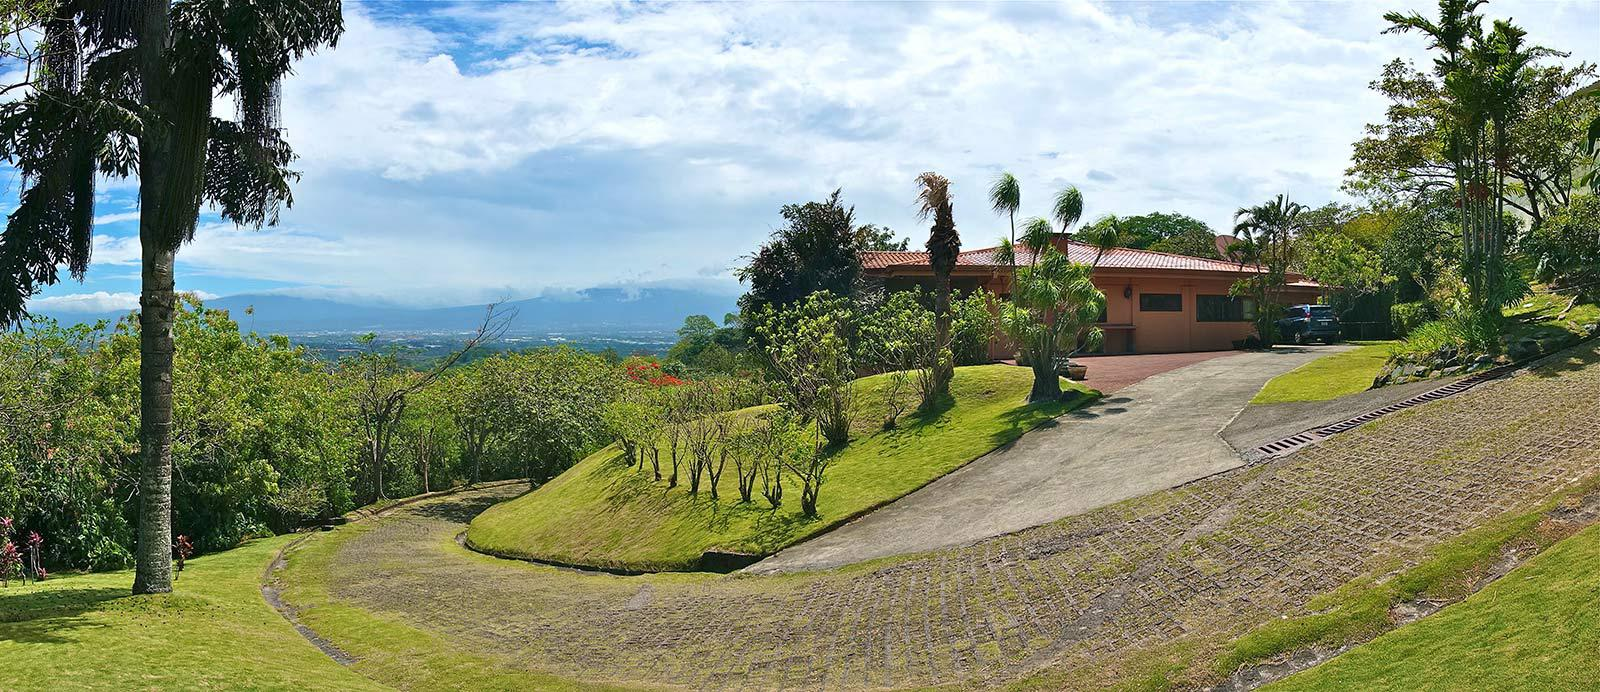 Villa Tucanes, Priceless Lifestyle in Santa Ana hills